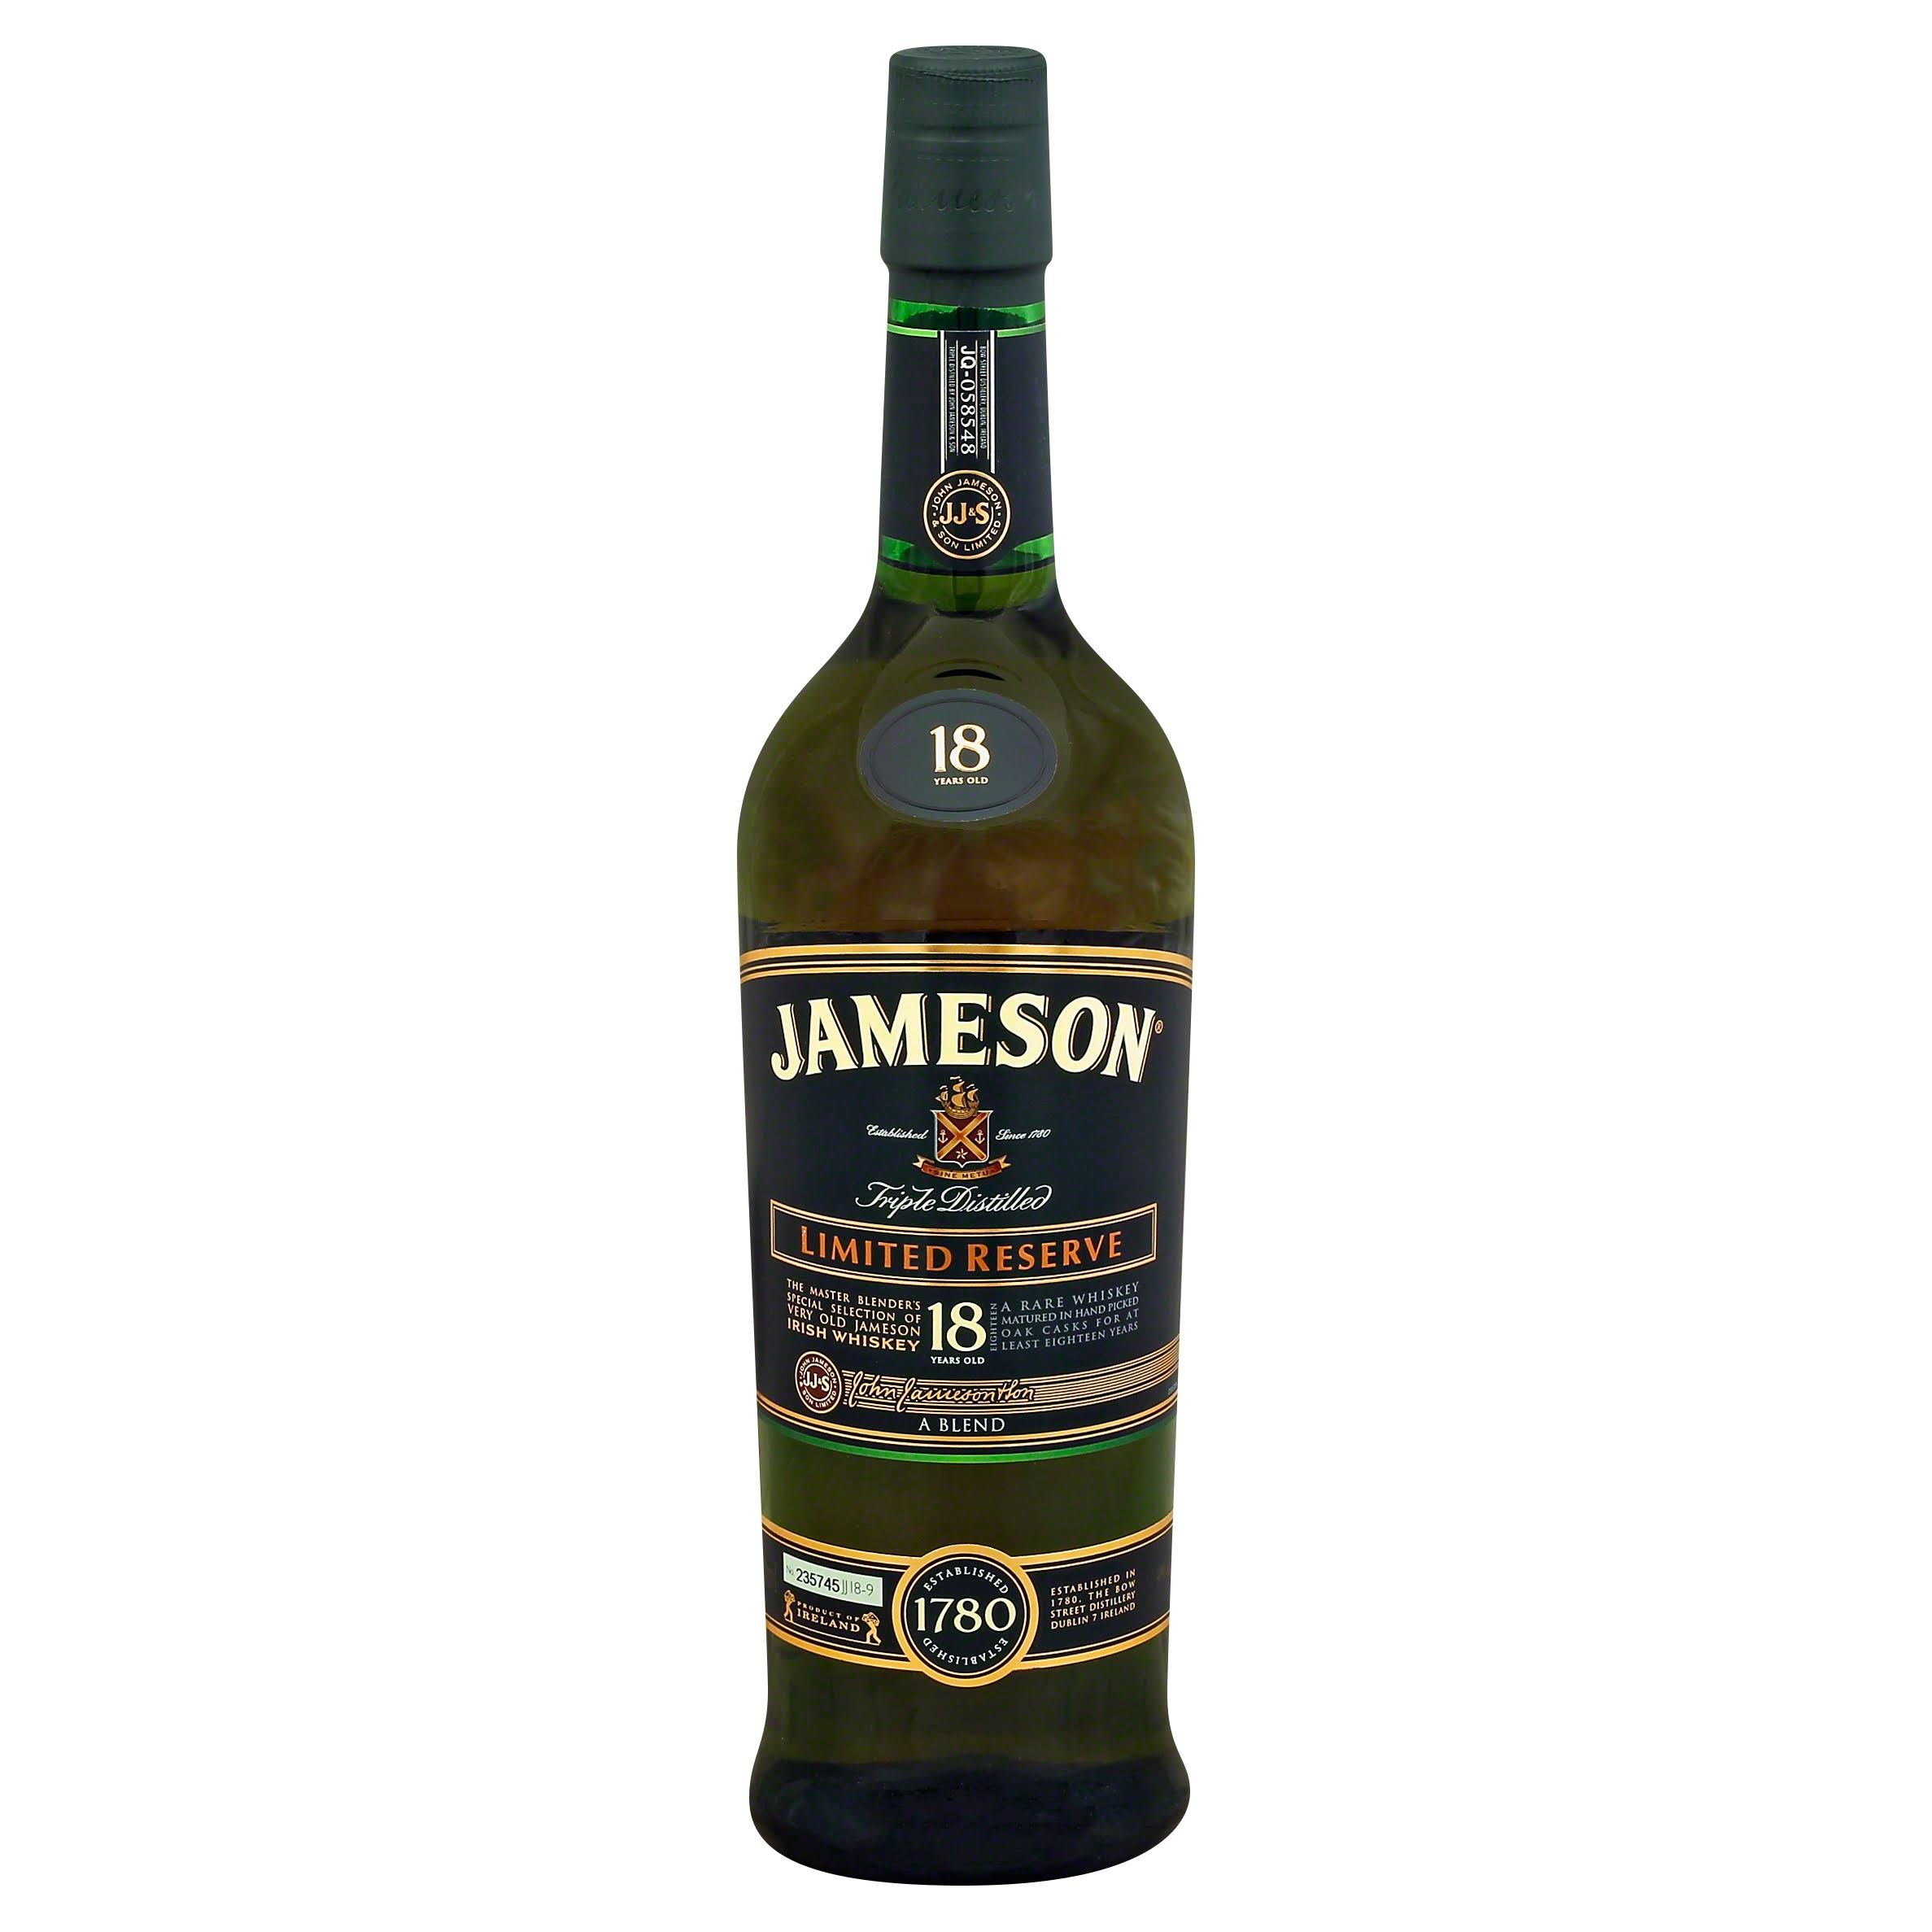 Jameson 18 Year Limited Reserve Irish Whiskey - 750ml